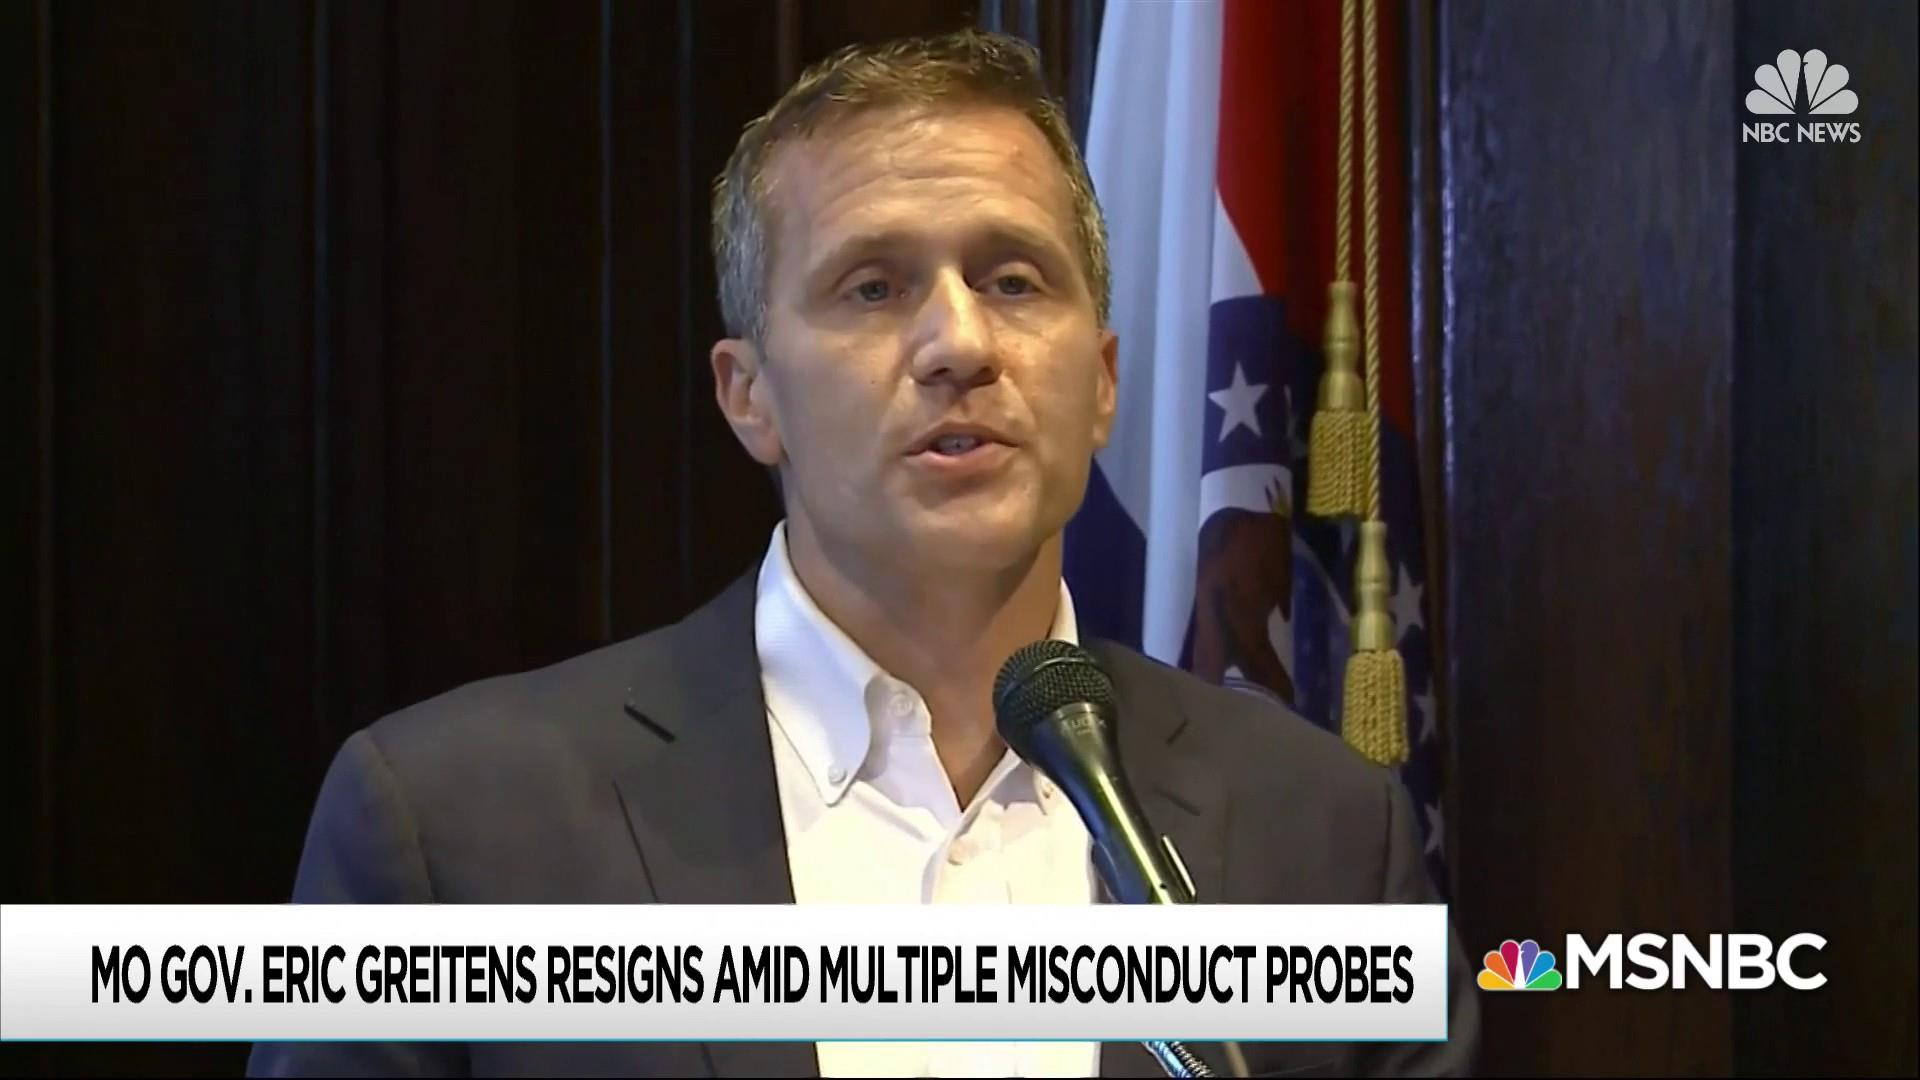 Greitens plays a politician's best card to make charges go away